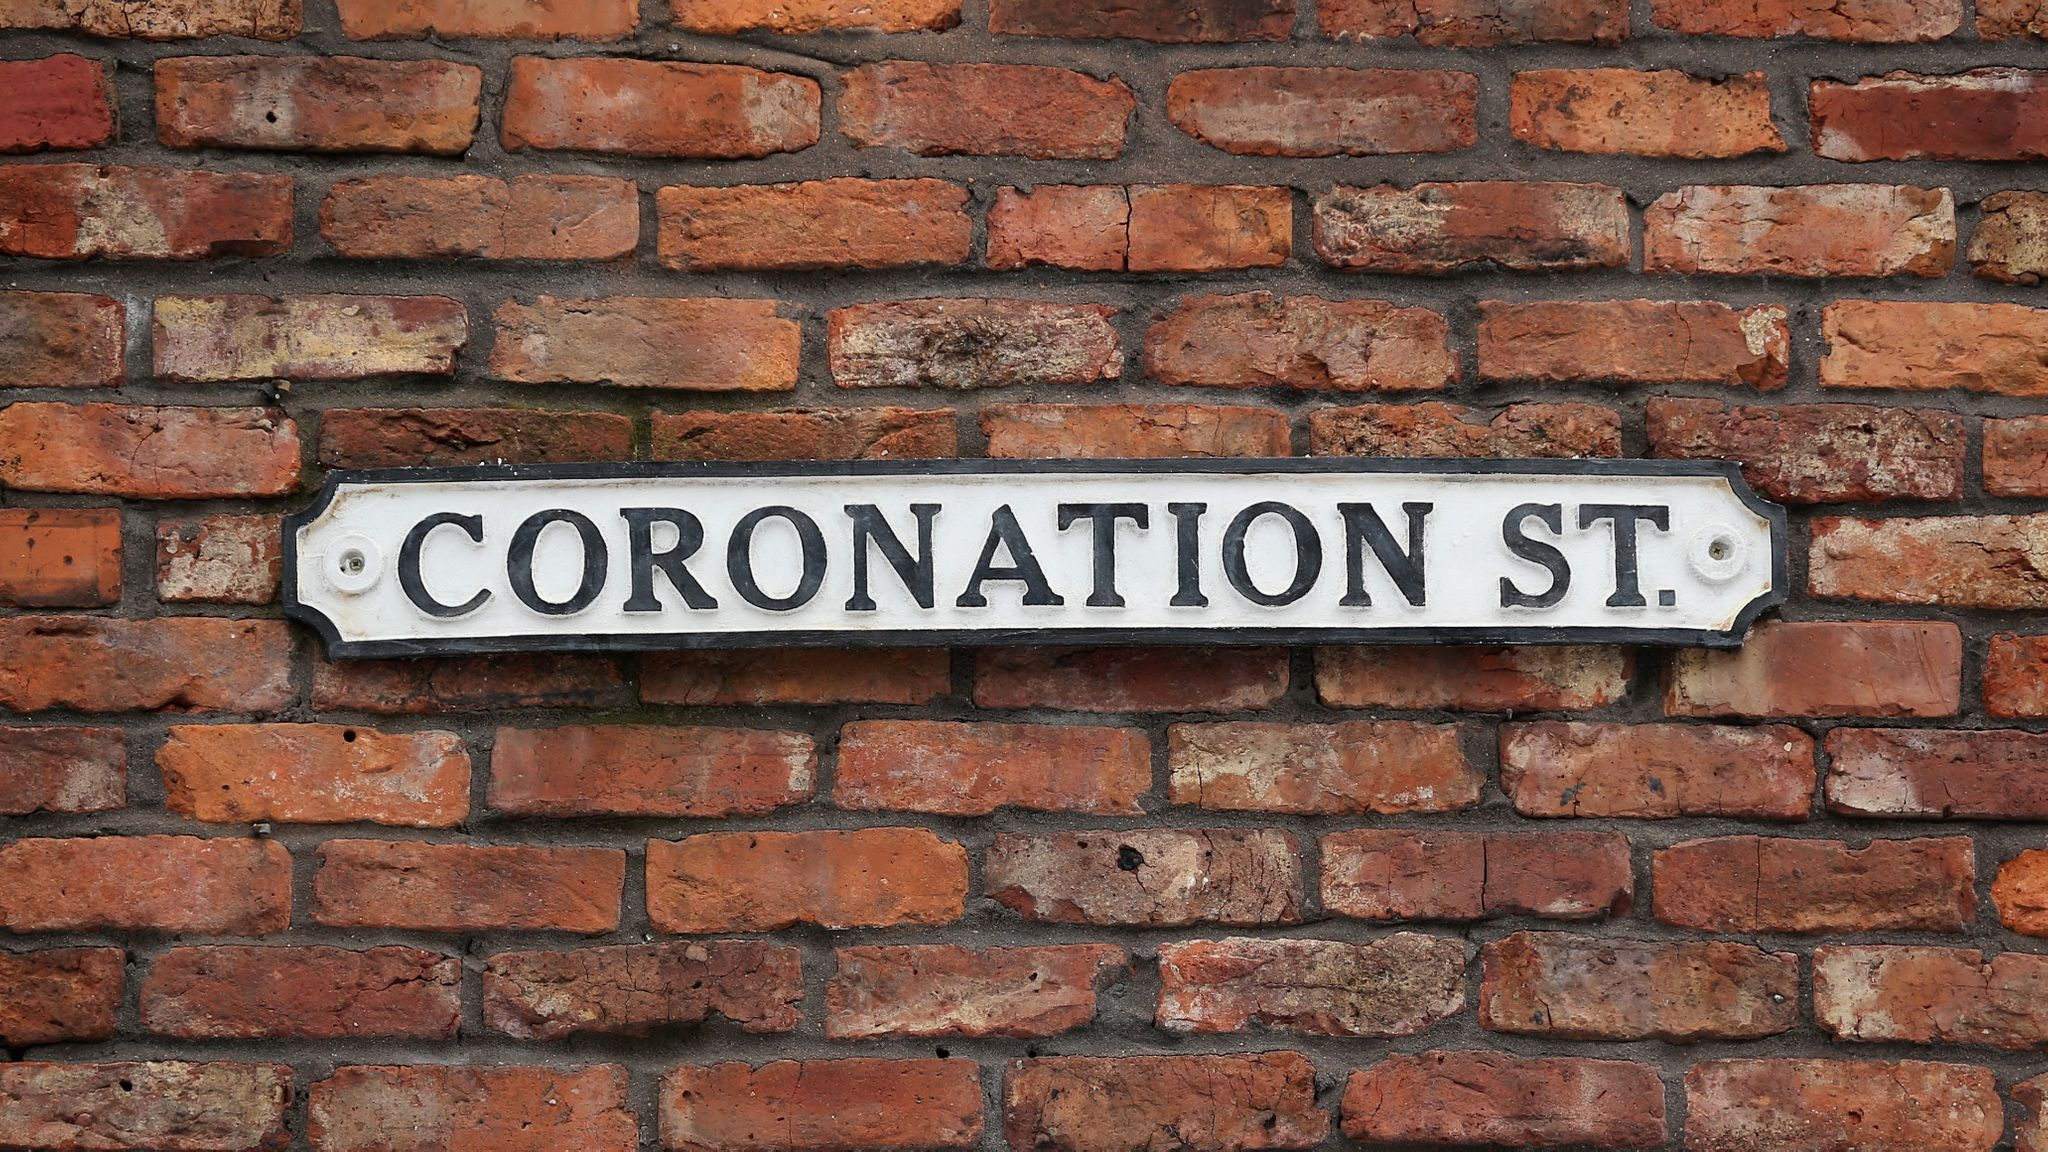 Coronation Street has been running for nearly 60 years